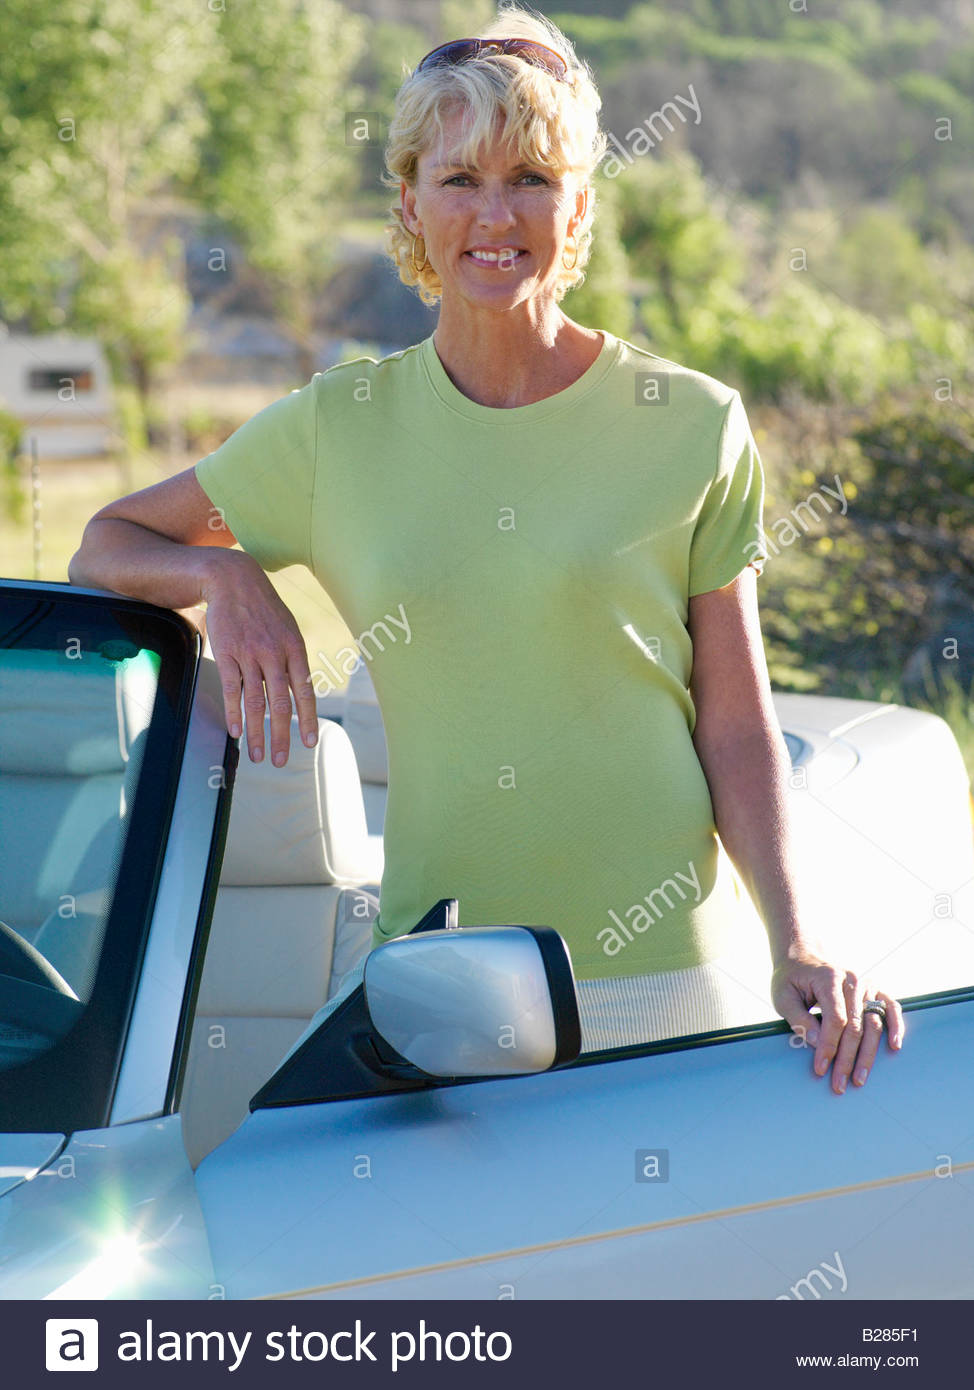 Mature woman by convertible car, smiling, portrait - Stock Image